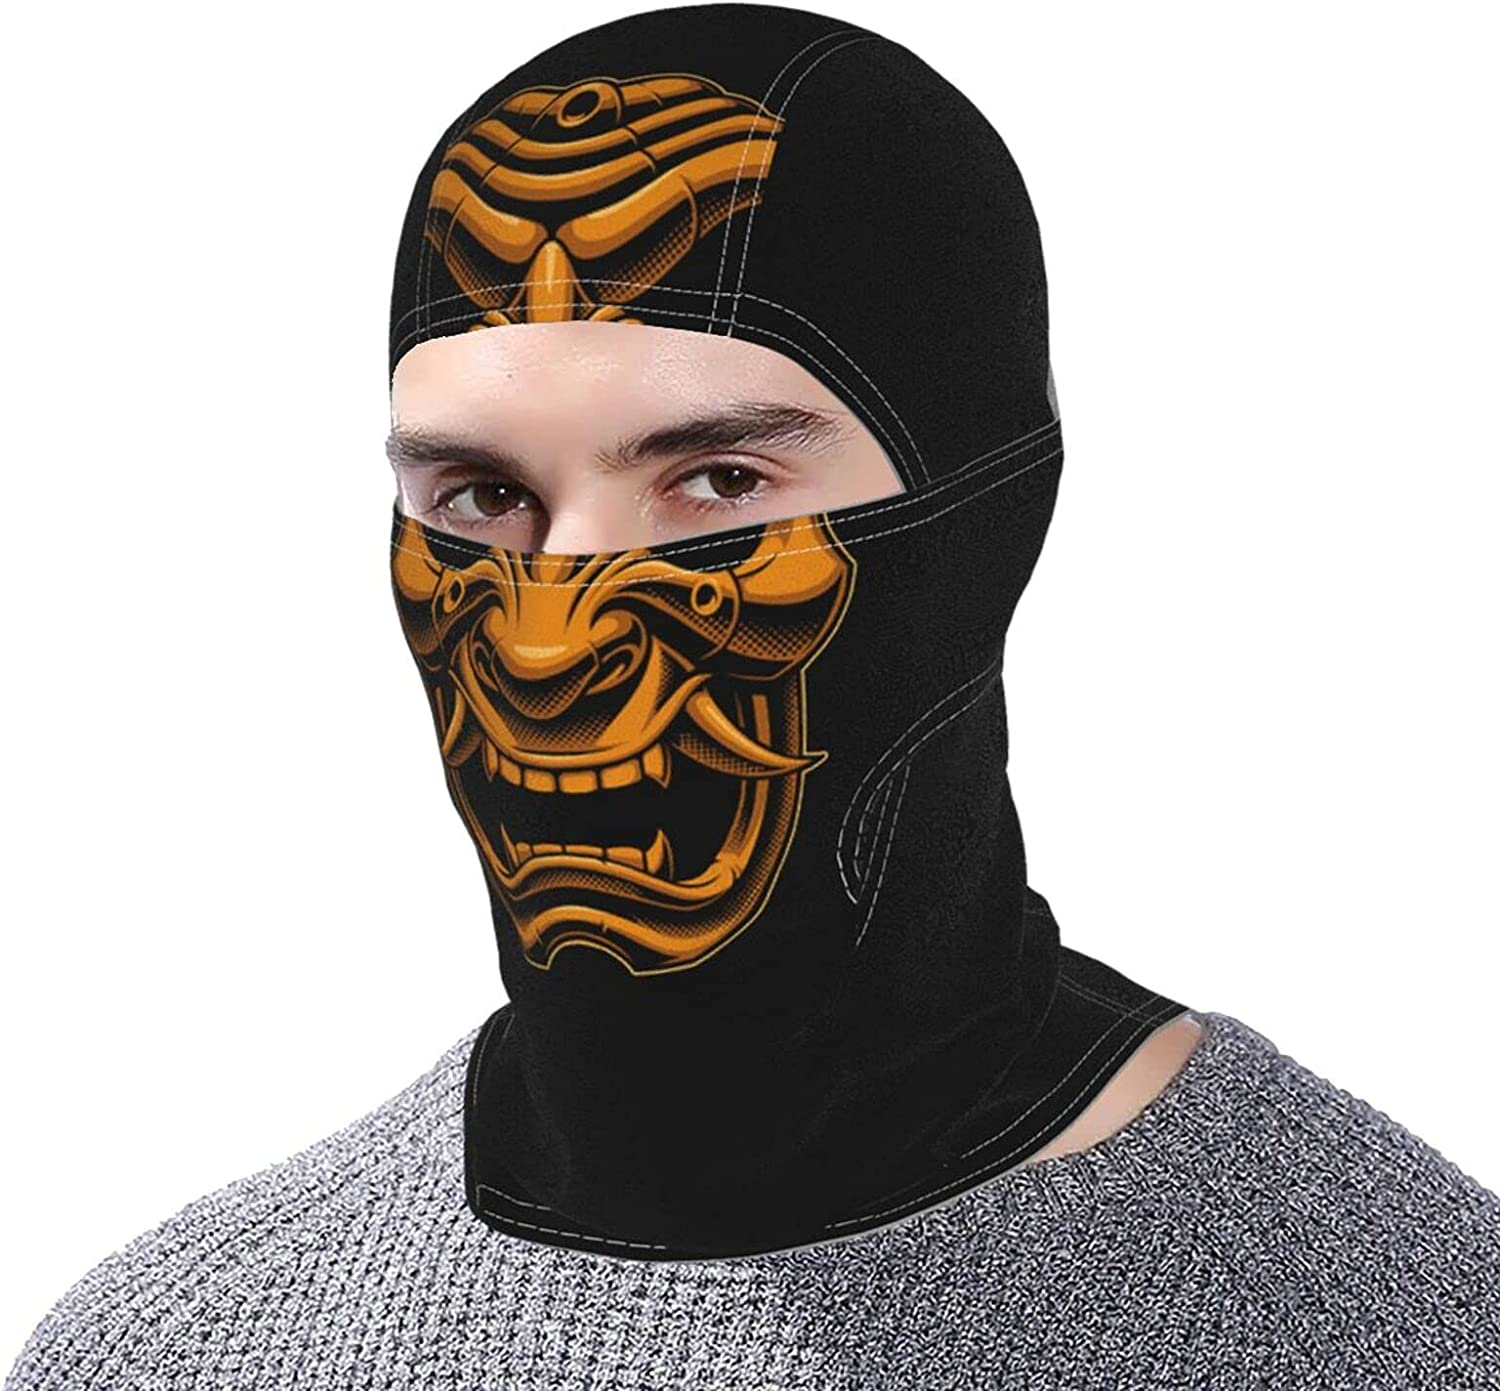 Awesome Samurai Oni Gold Balaclava Mask - Full face mask for Both Men and Women - Sun, Wind, Dust Protection